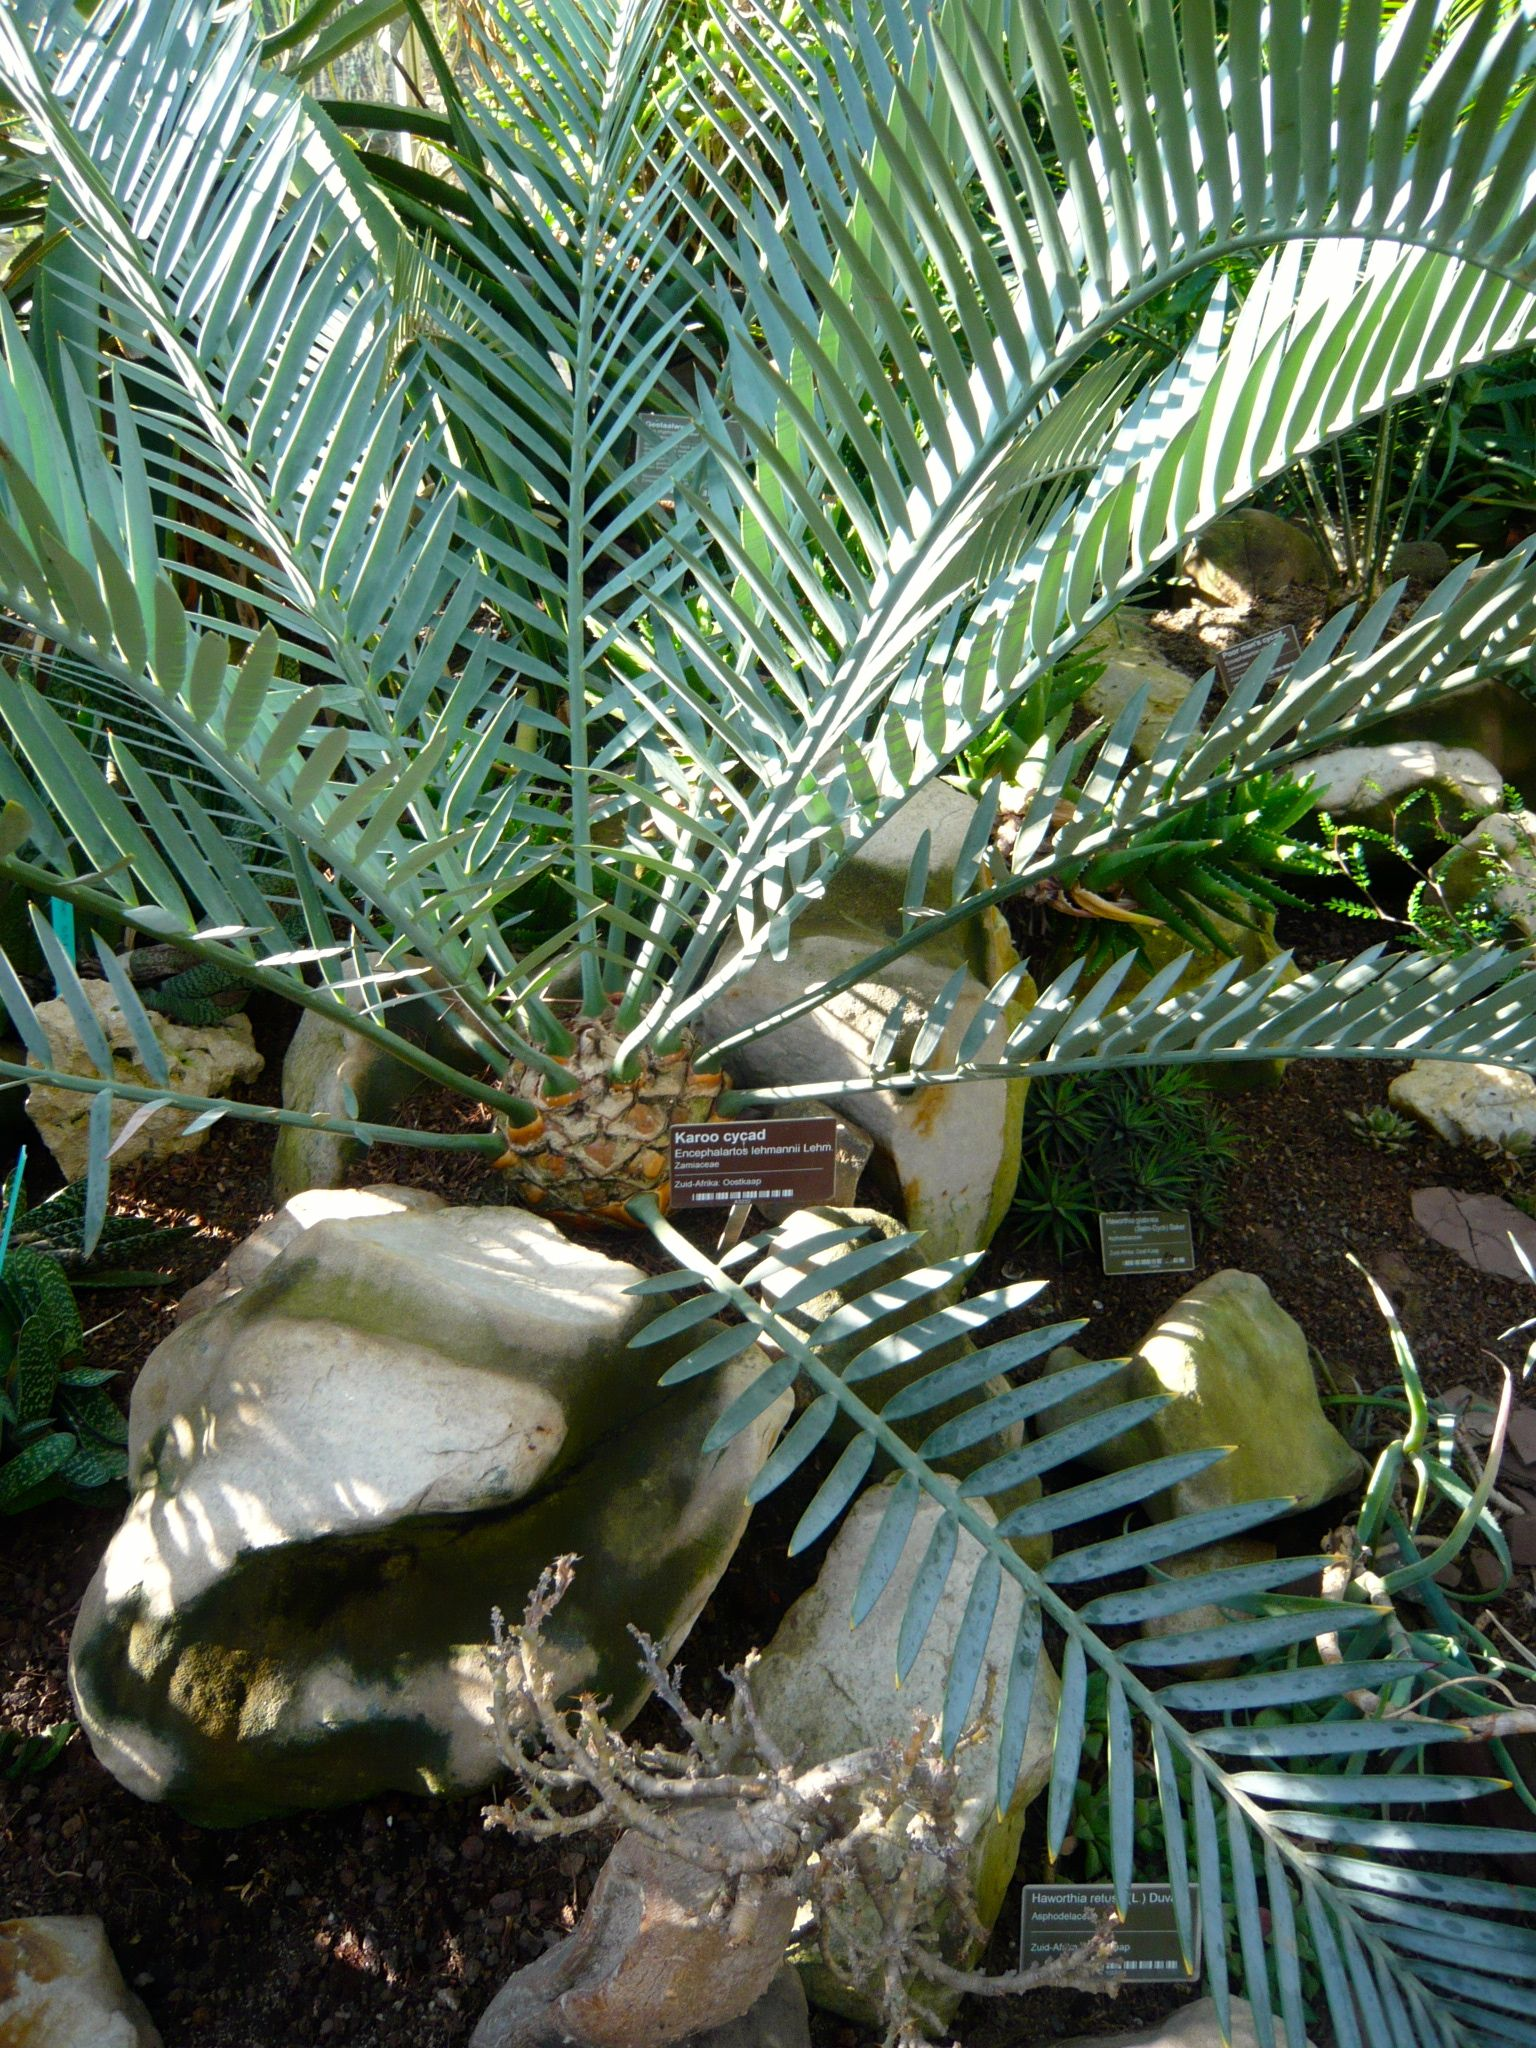 Hortus Botanicus Amsterdam has a renowned cycad collection like